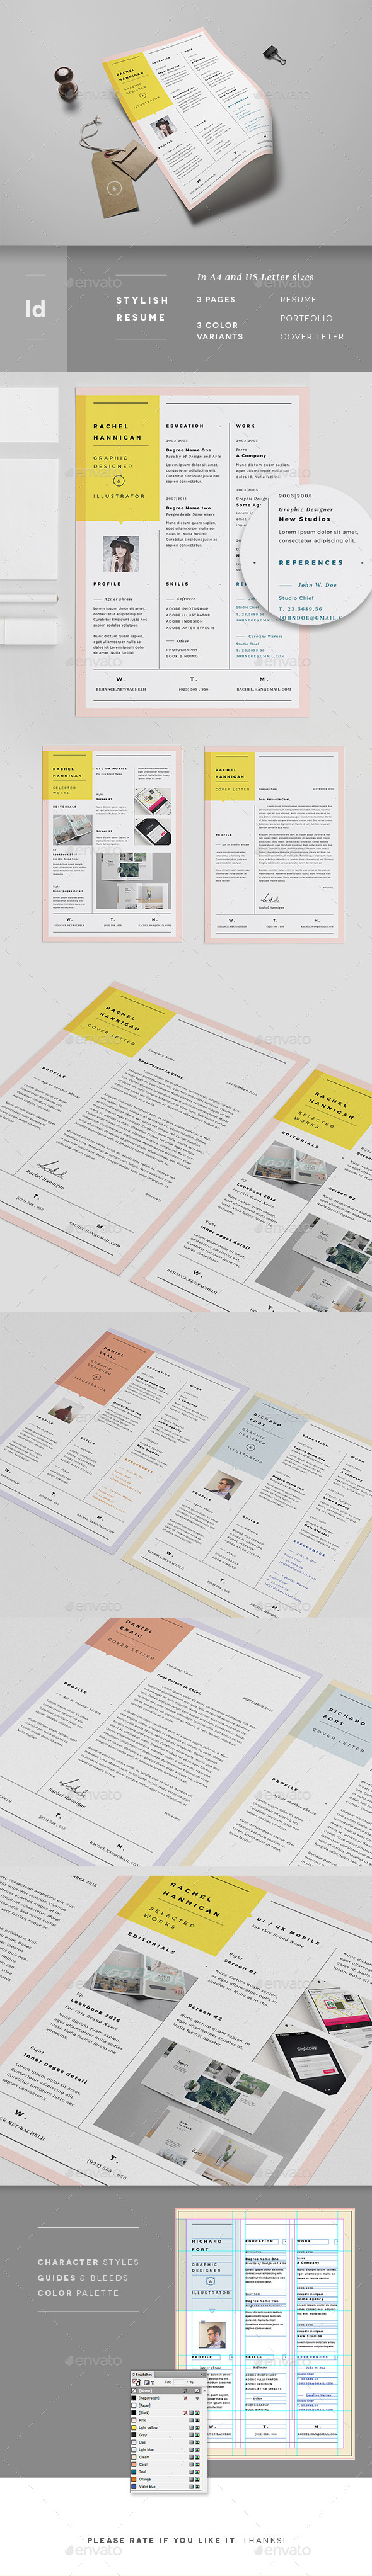 GraphicRiver 3 Pages Minimal Resume Portfolio & Letter 11408875